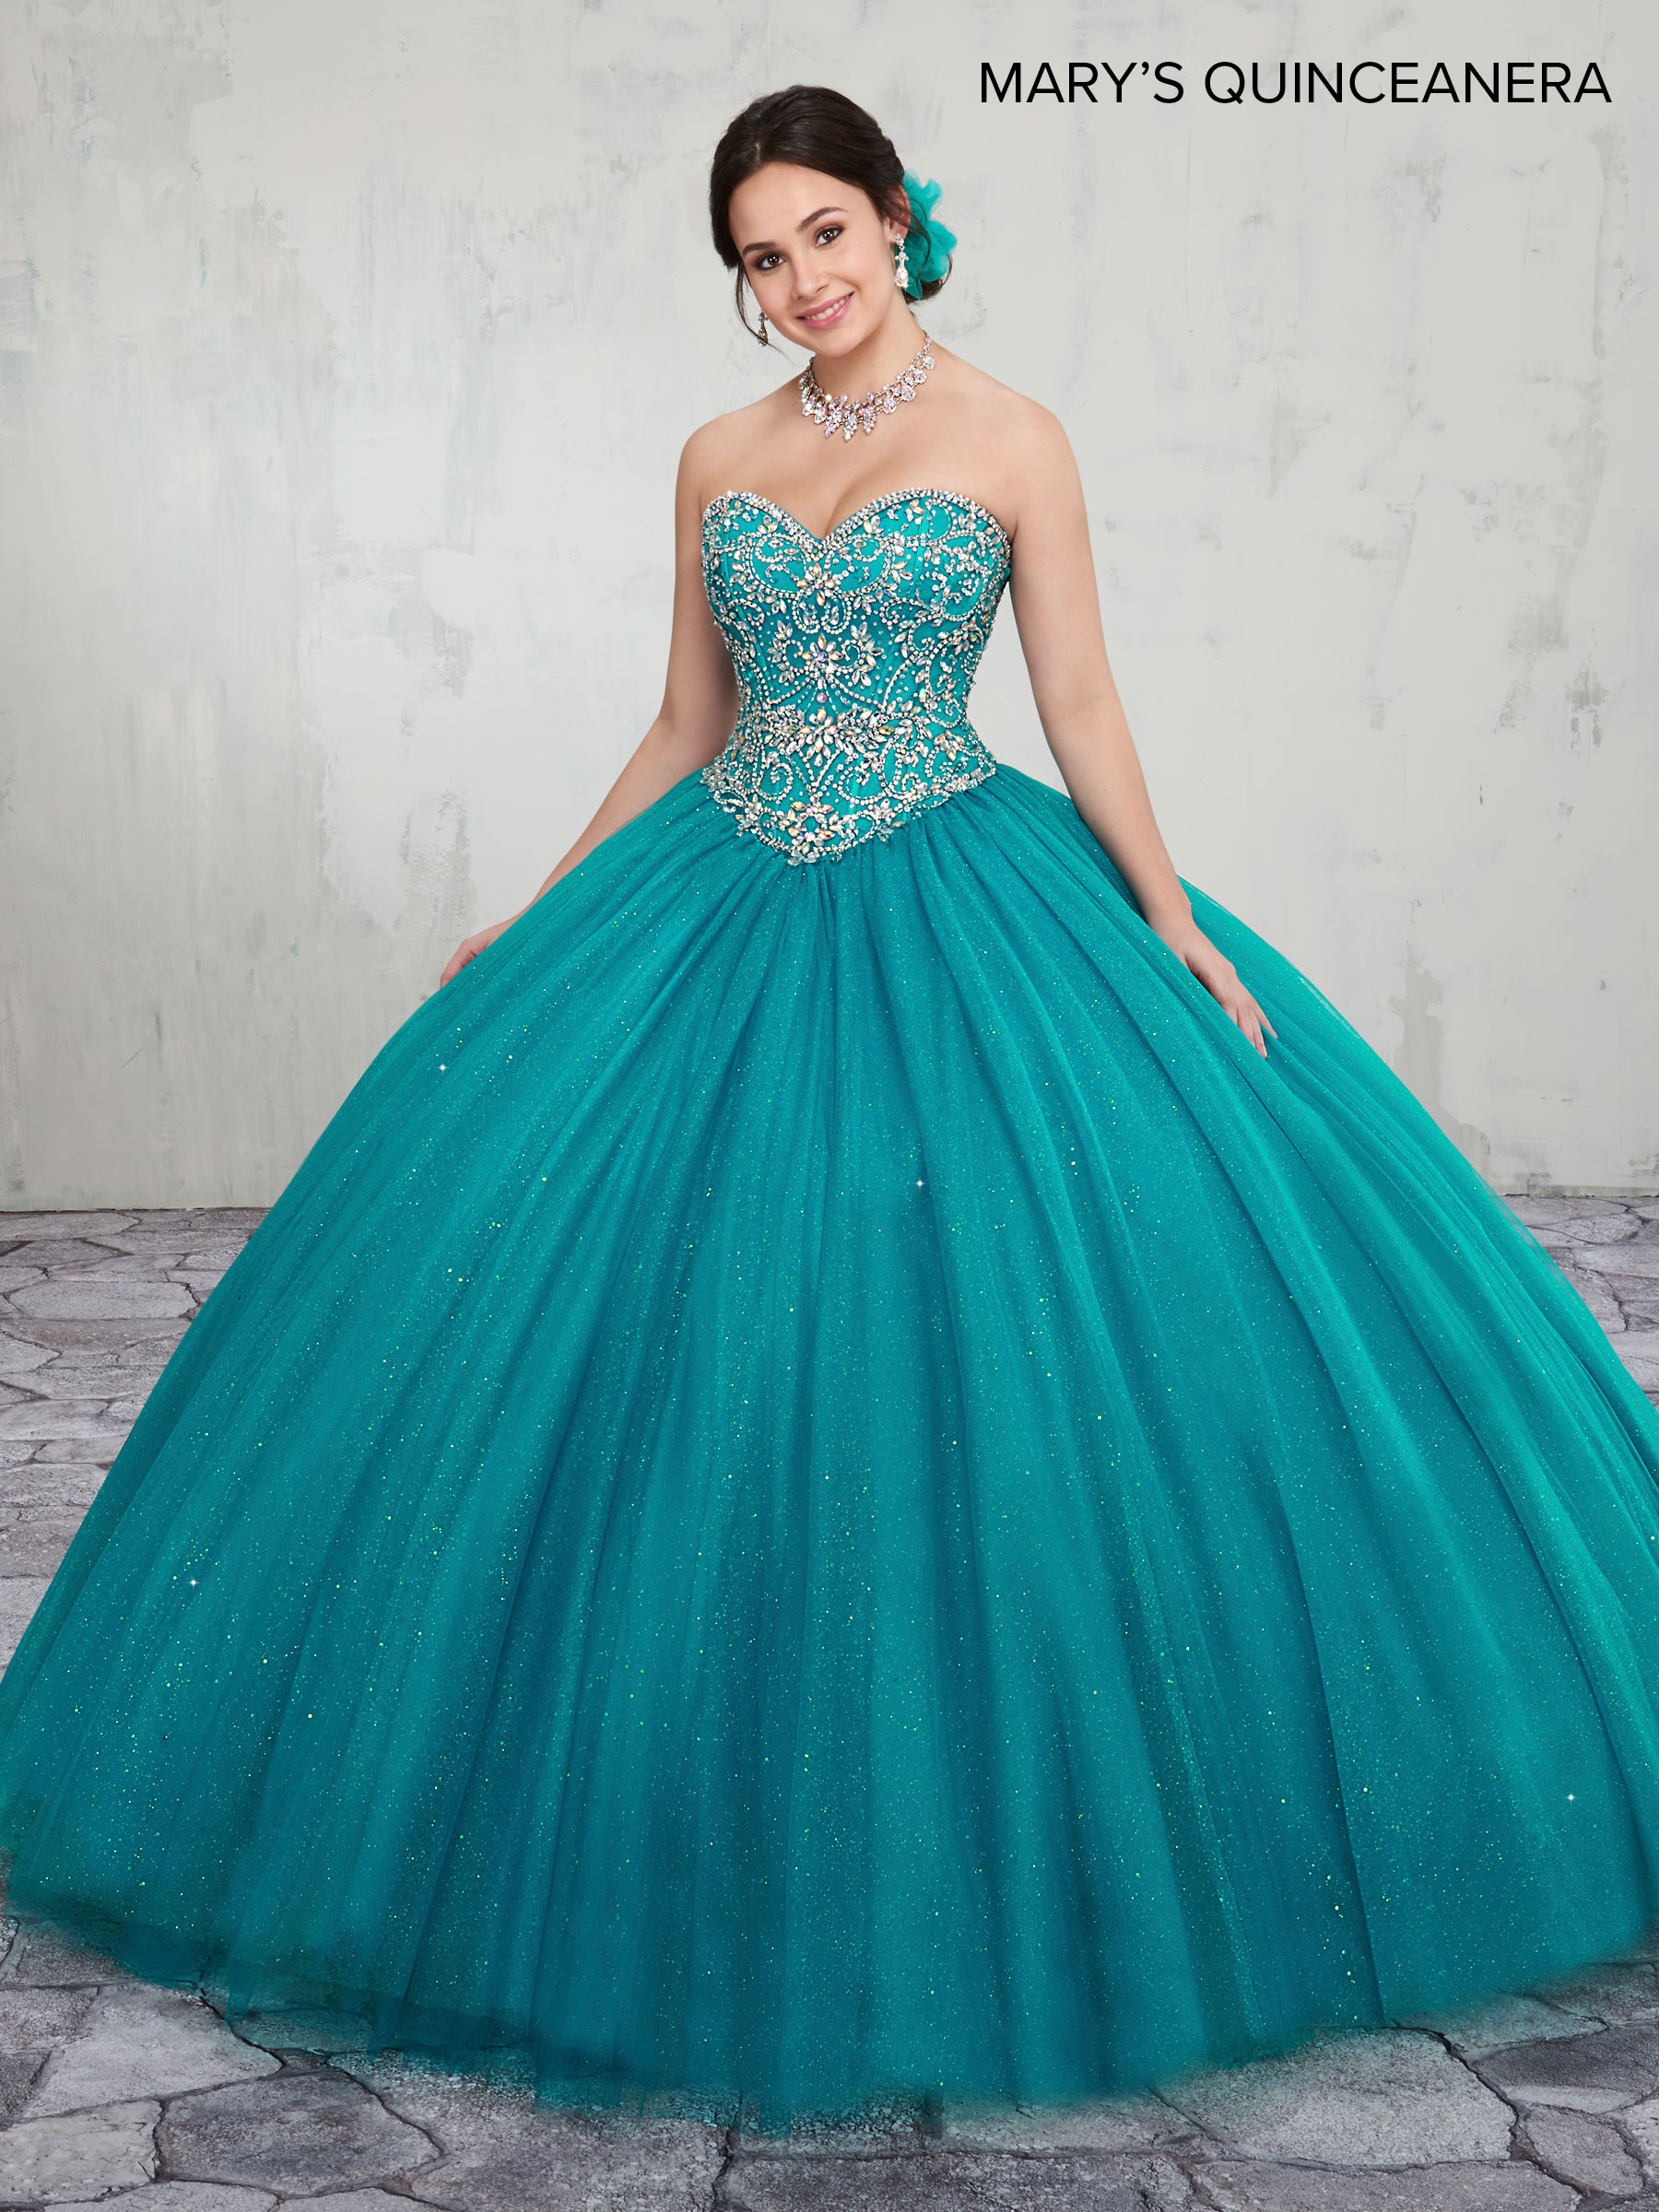 Marys Quinceanera Dresses | Style - MQ1014 in Bright Red, Mint, Teal ...